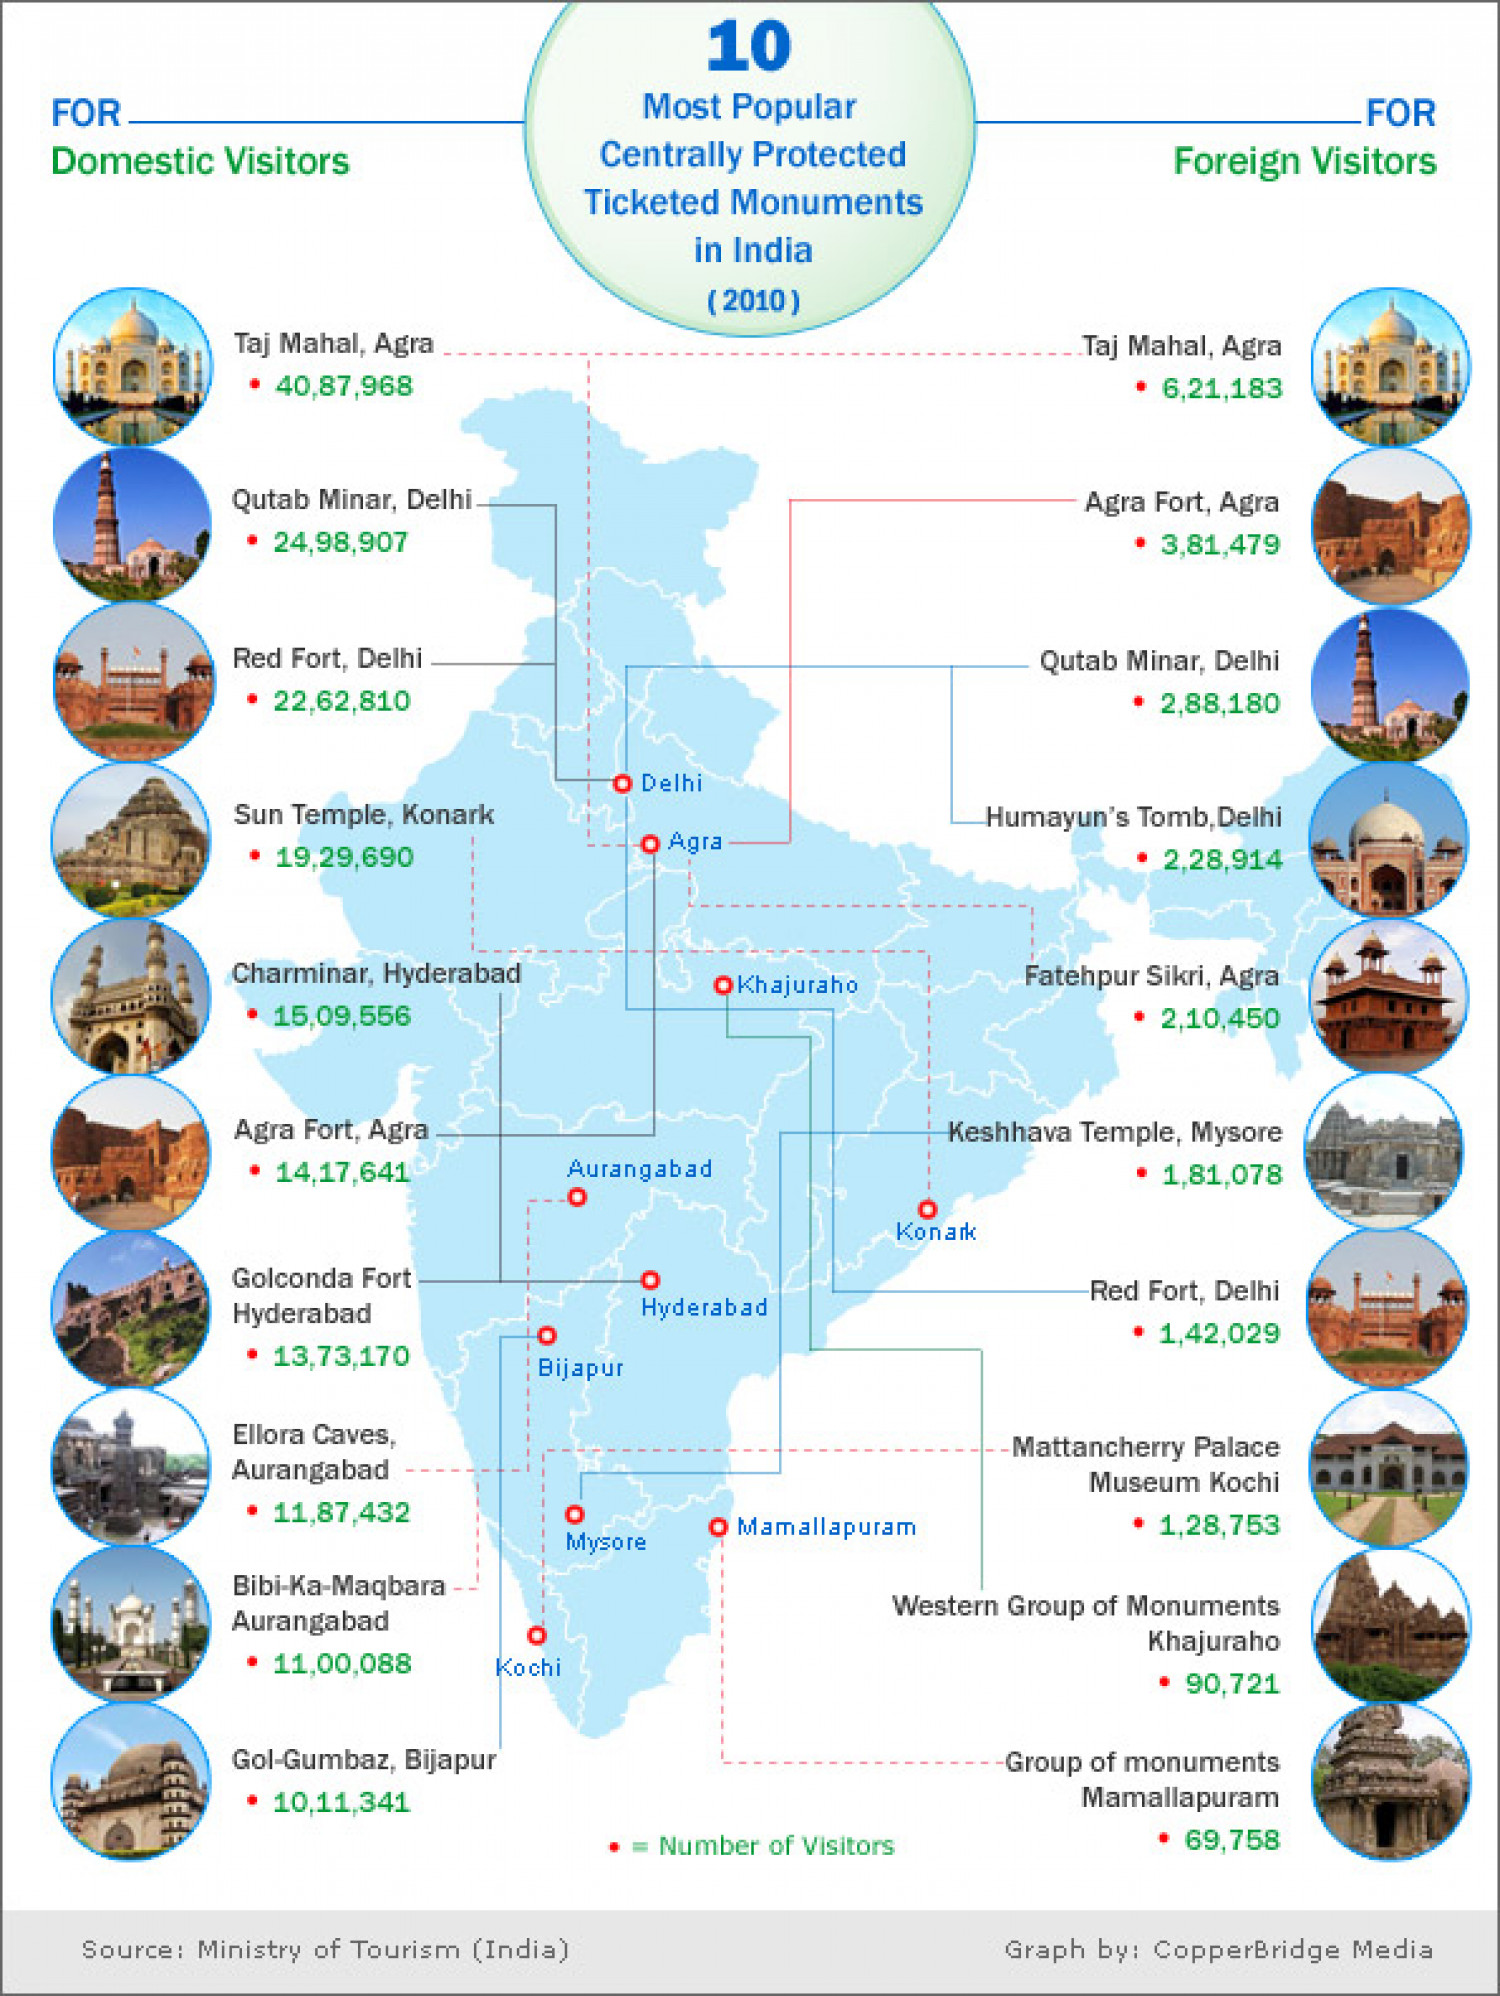 10 Most Popular Indian Monuments Amongst The Domestic